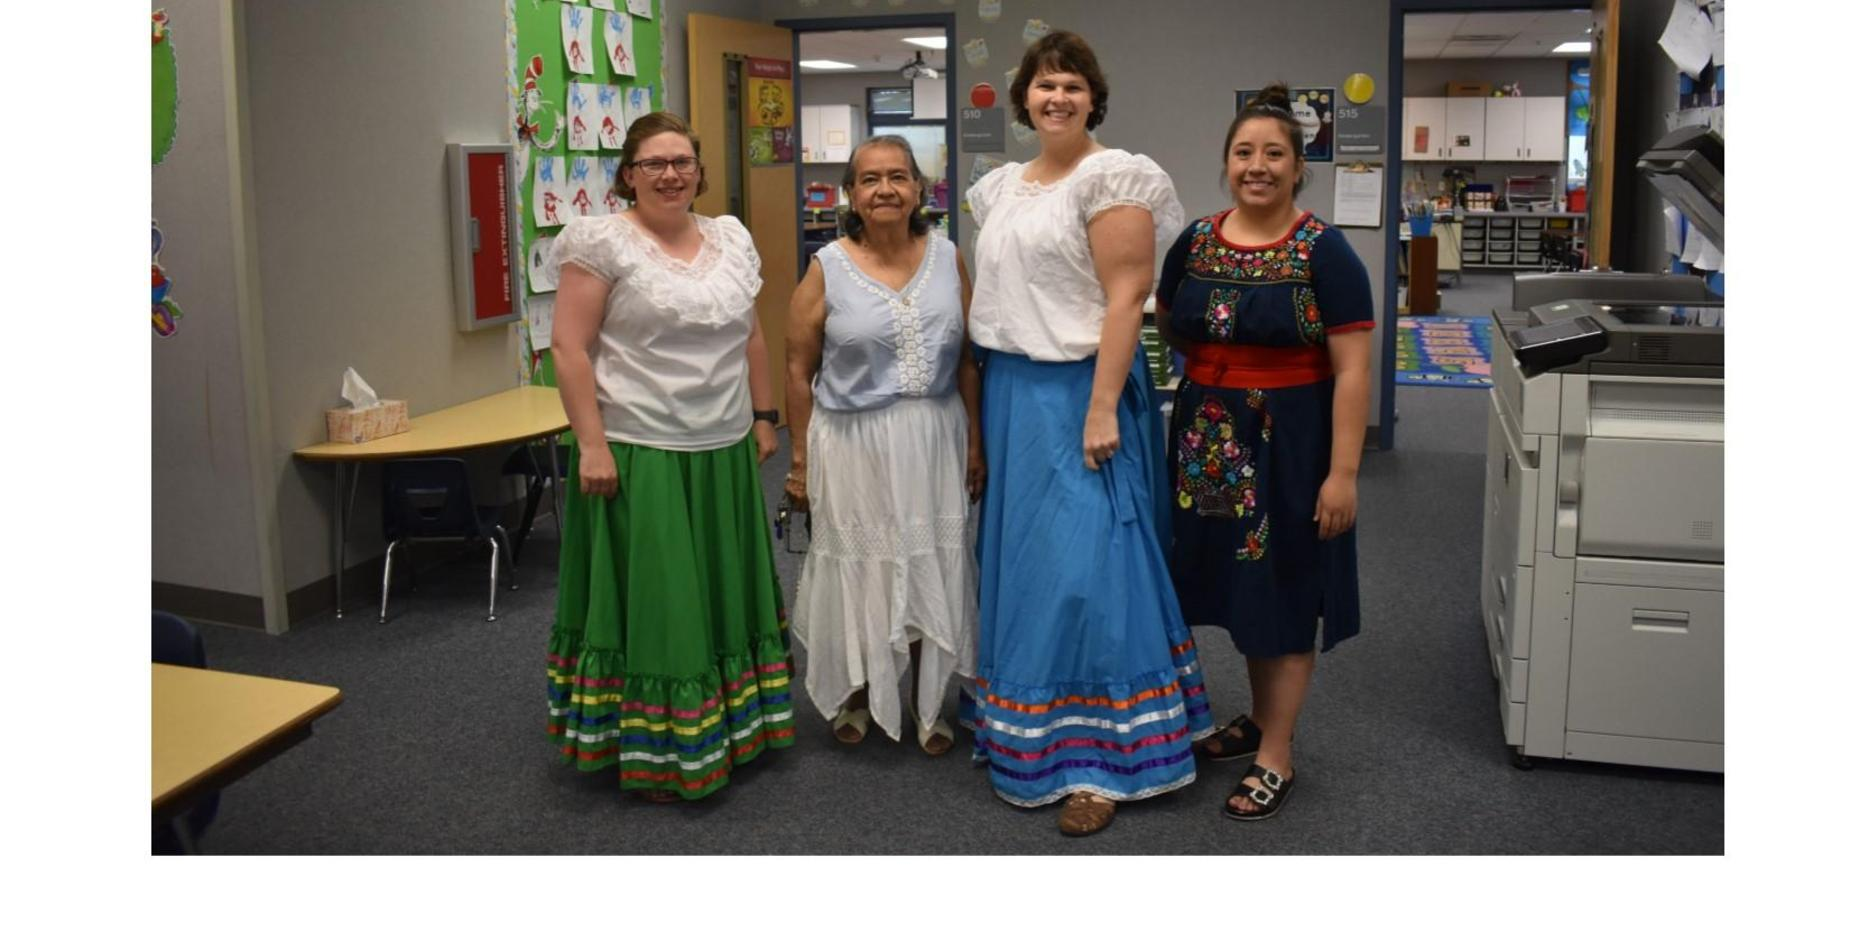 Four of our kindergarten teachers dressed up for cultural dress day.